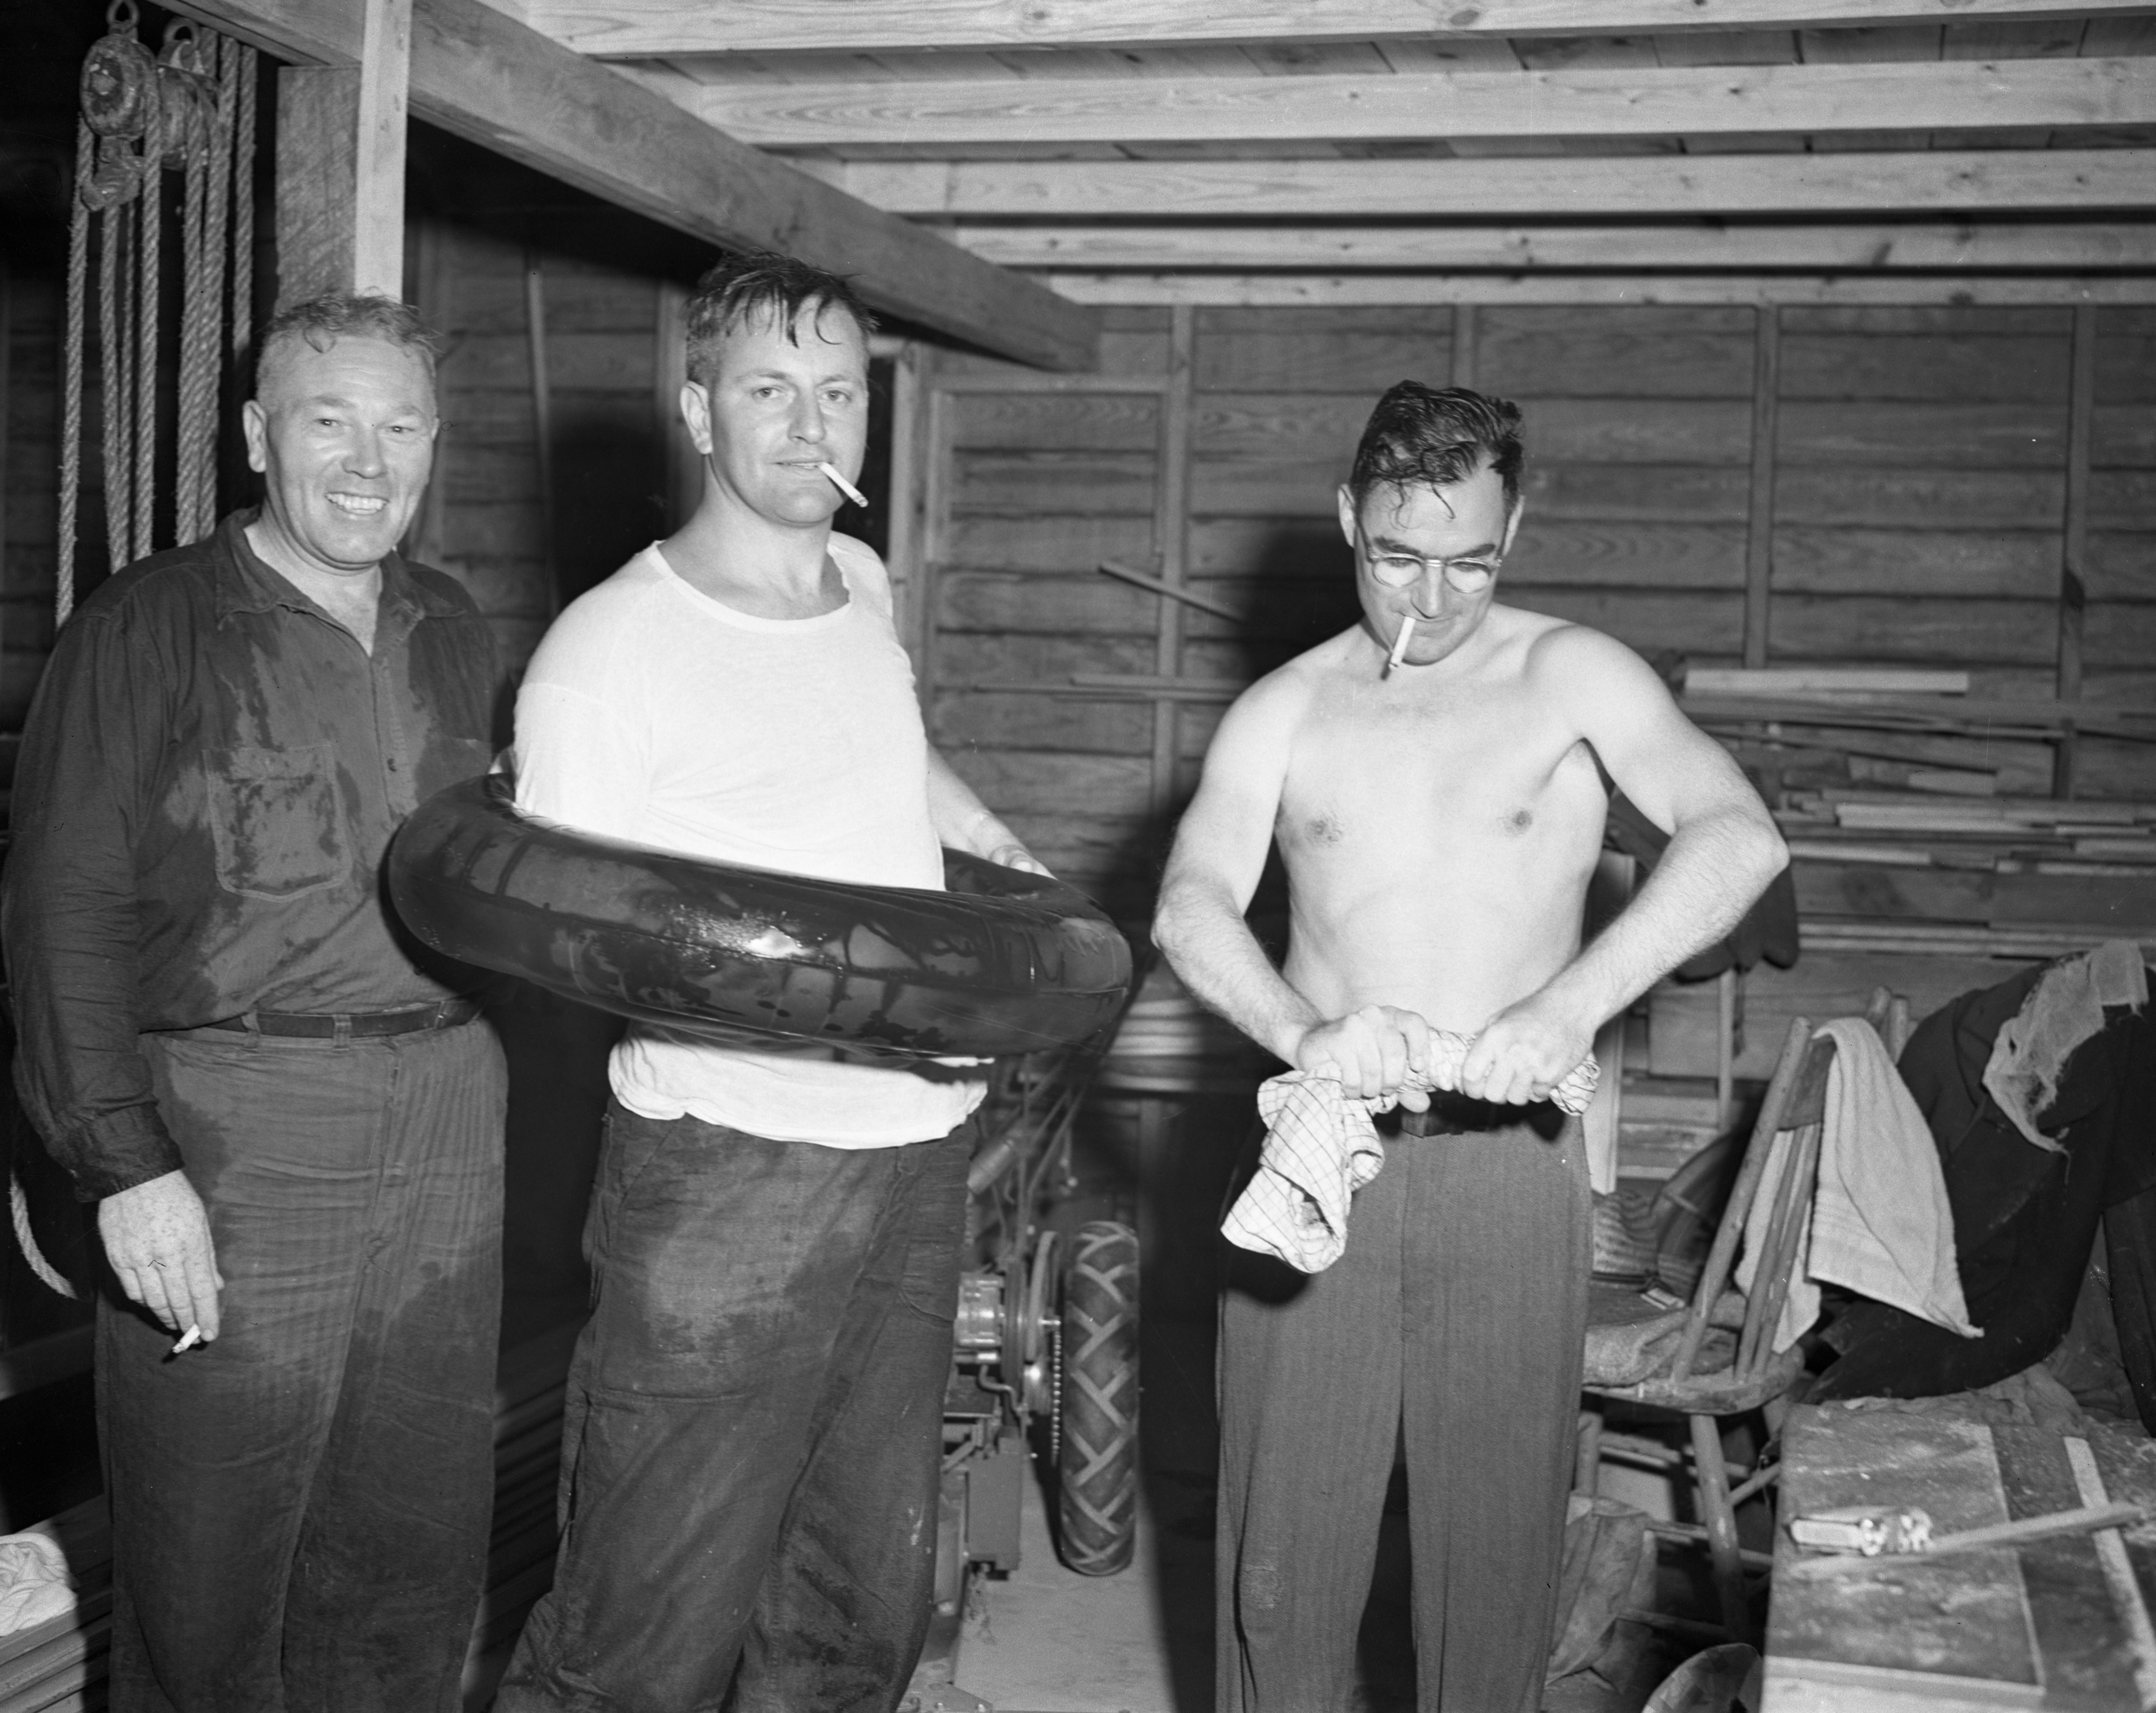 Ann Arbor News Employees Red Losey, Karl Horning, and Charlie Westenfeld, wring out clothing at Woodlawn Lake, April 1950 image